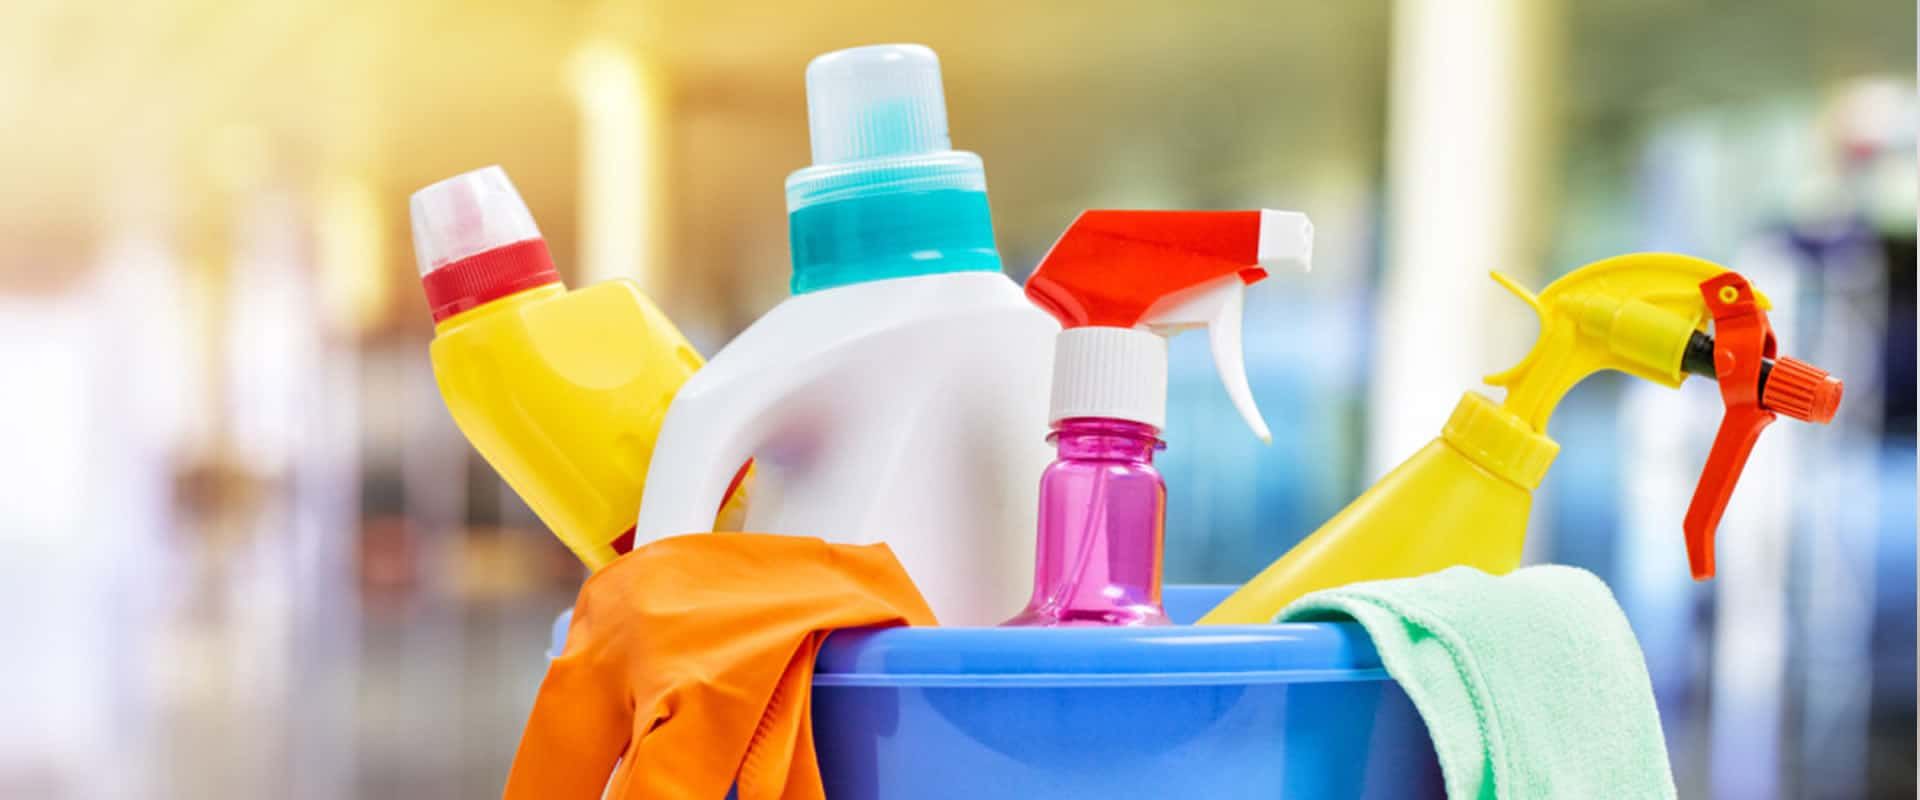 Best Laundry Detergents For 2019 – Ultimate Buyer's Guide and Reviews